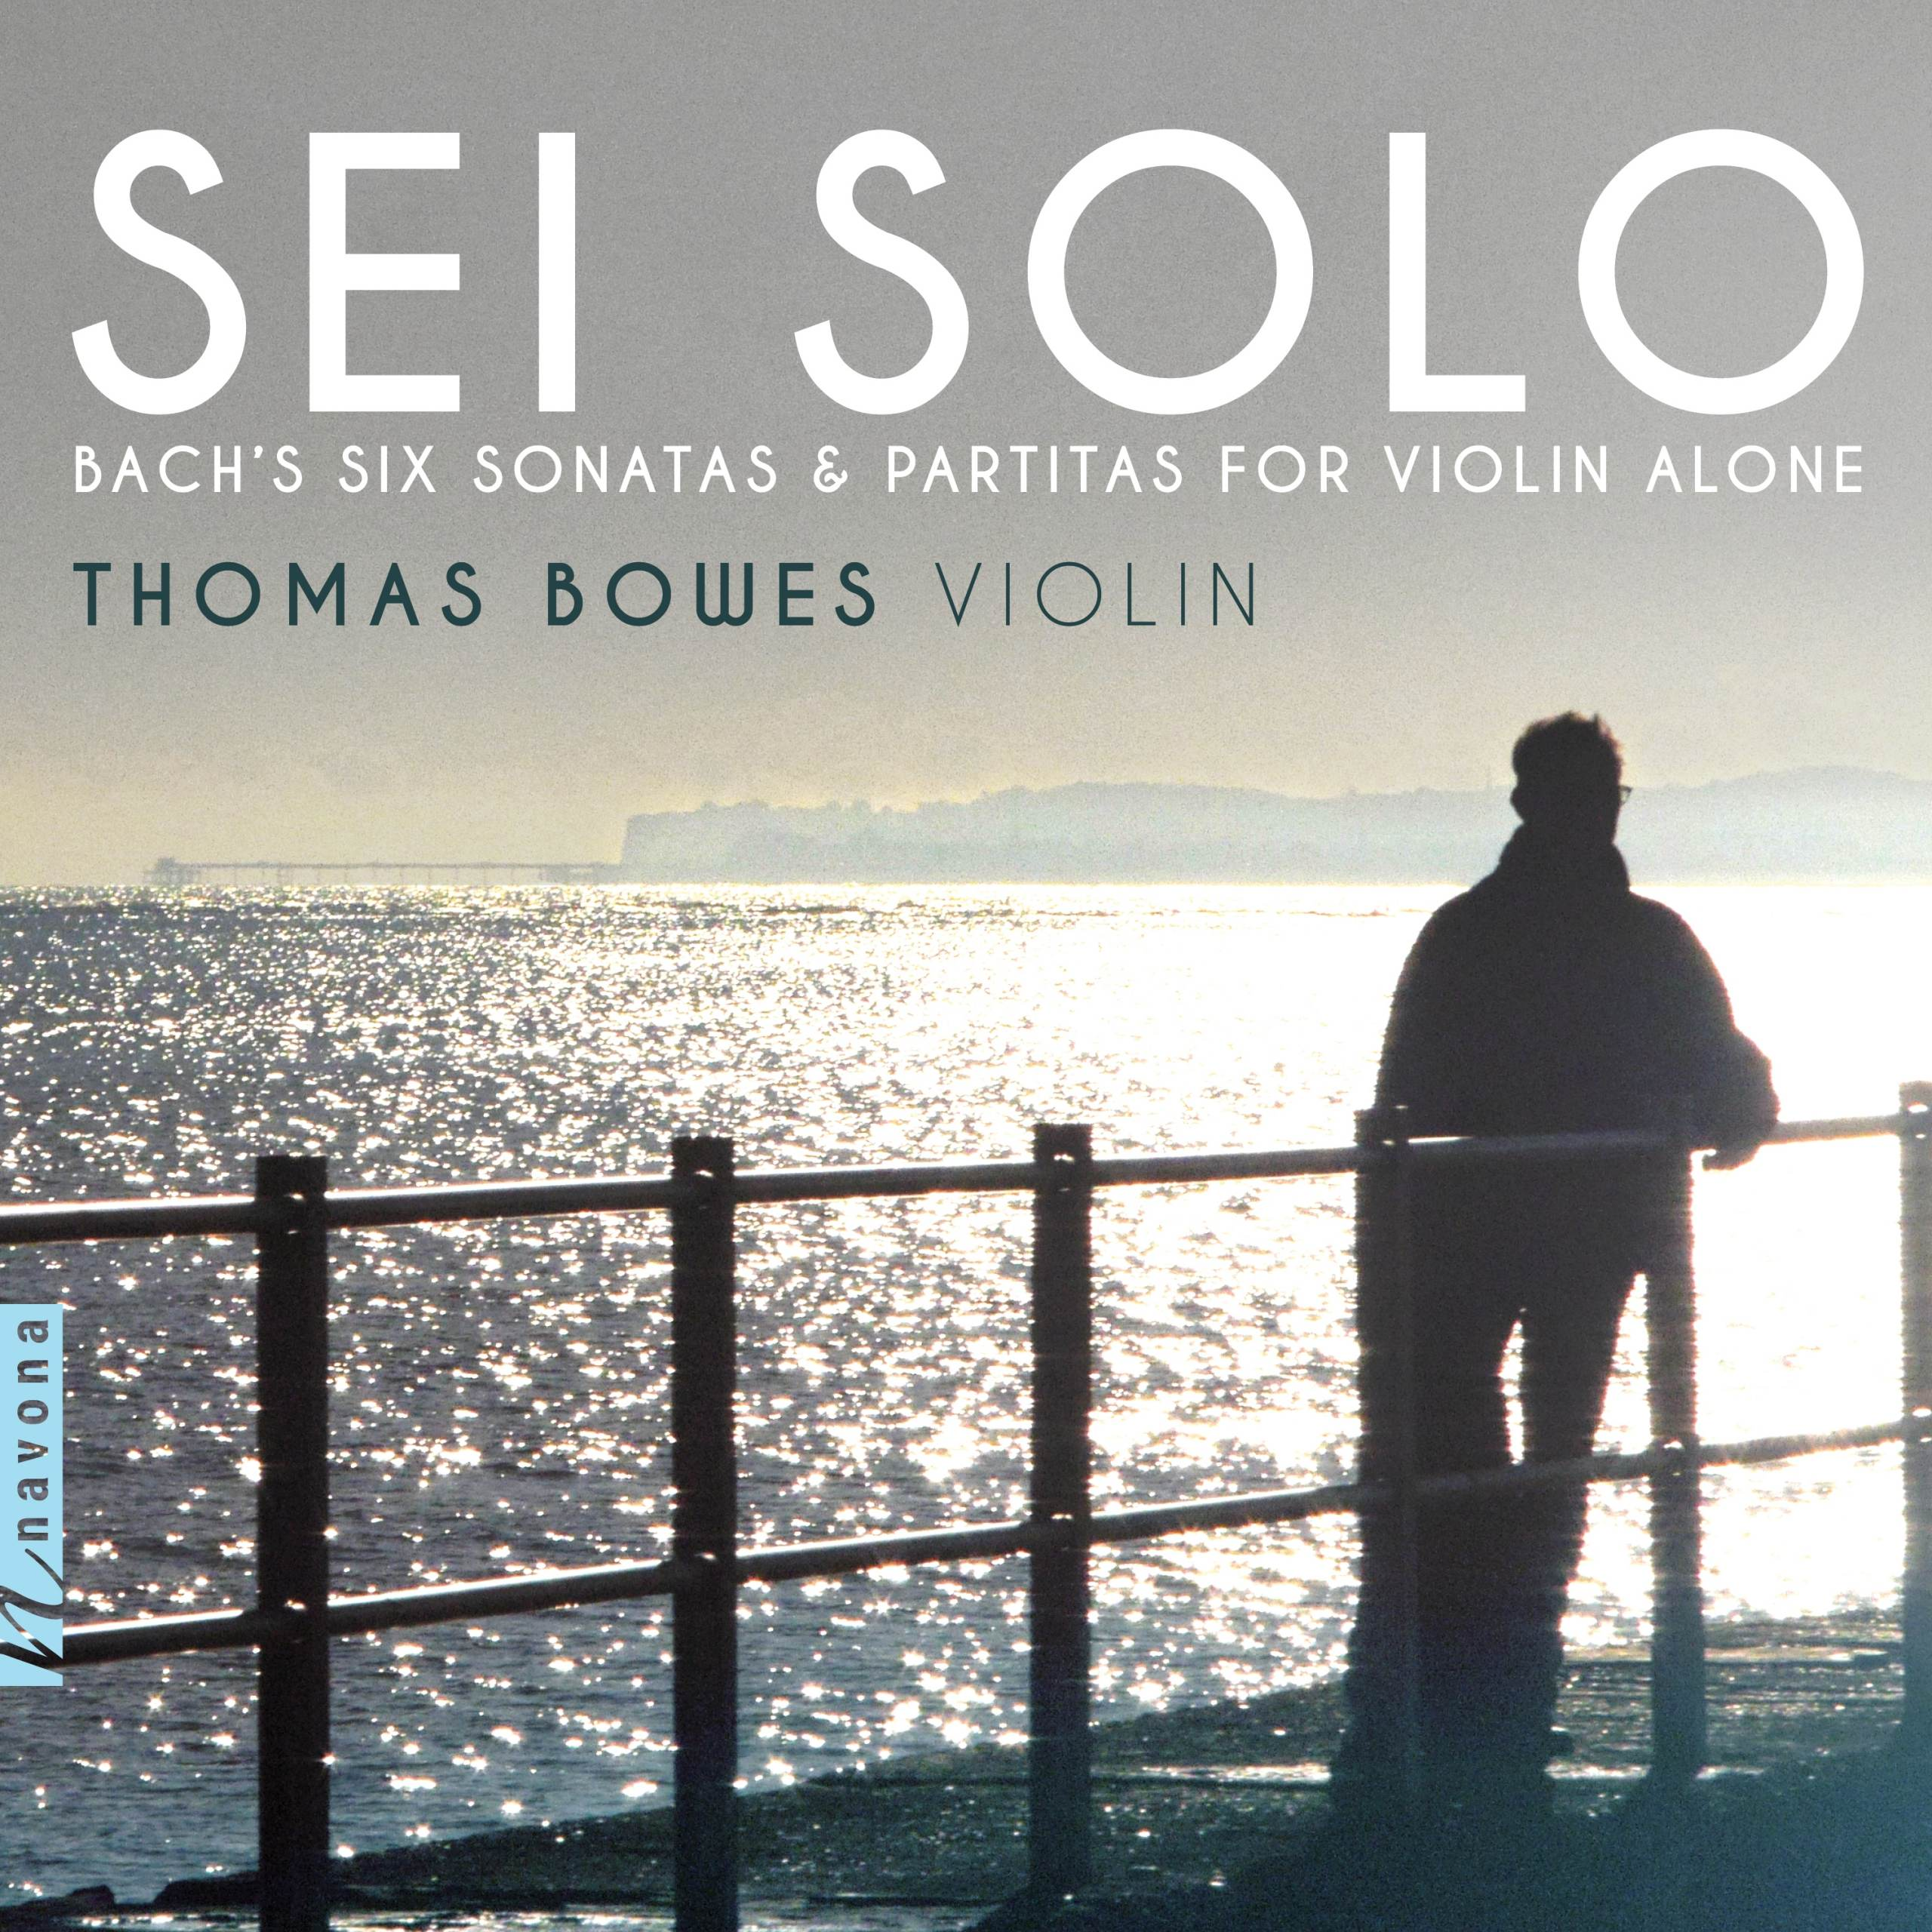 Thomas Bowes's Sei Solo Album Cover, figure against the water